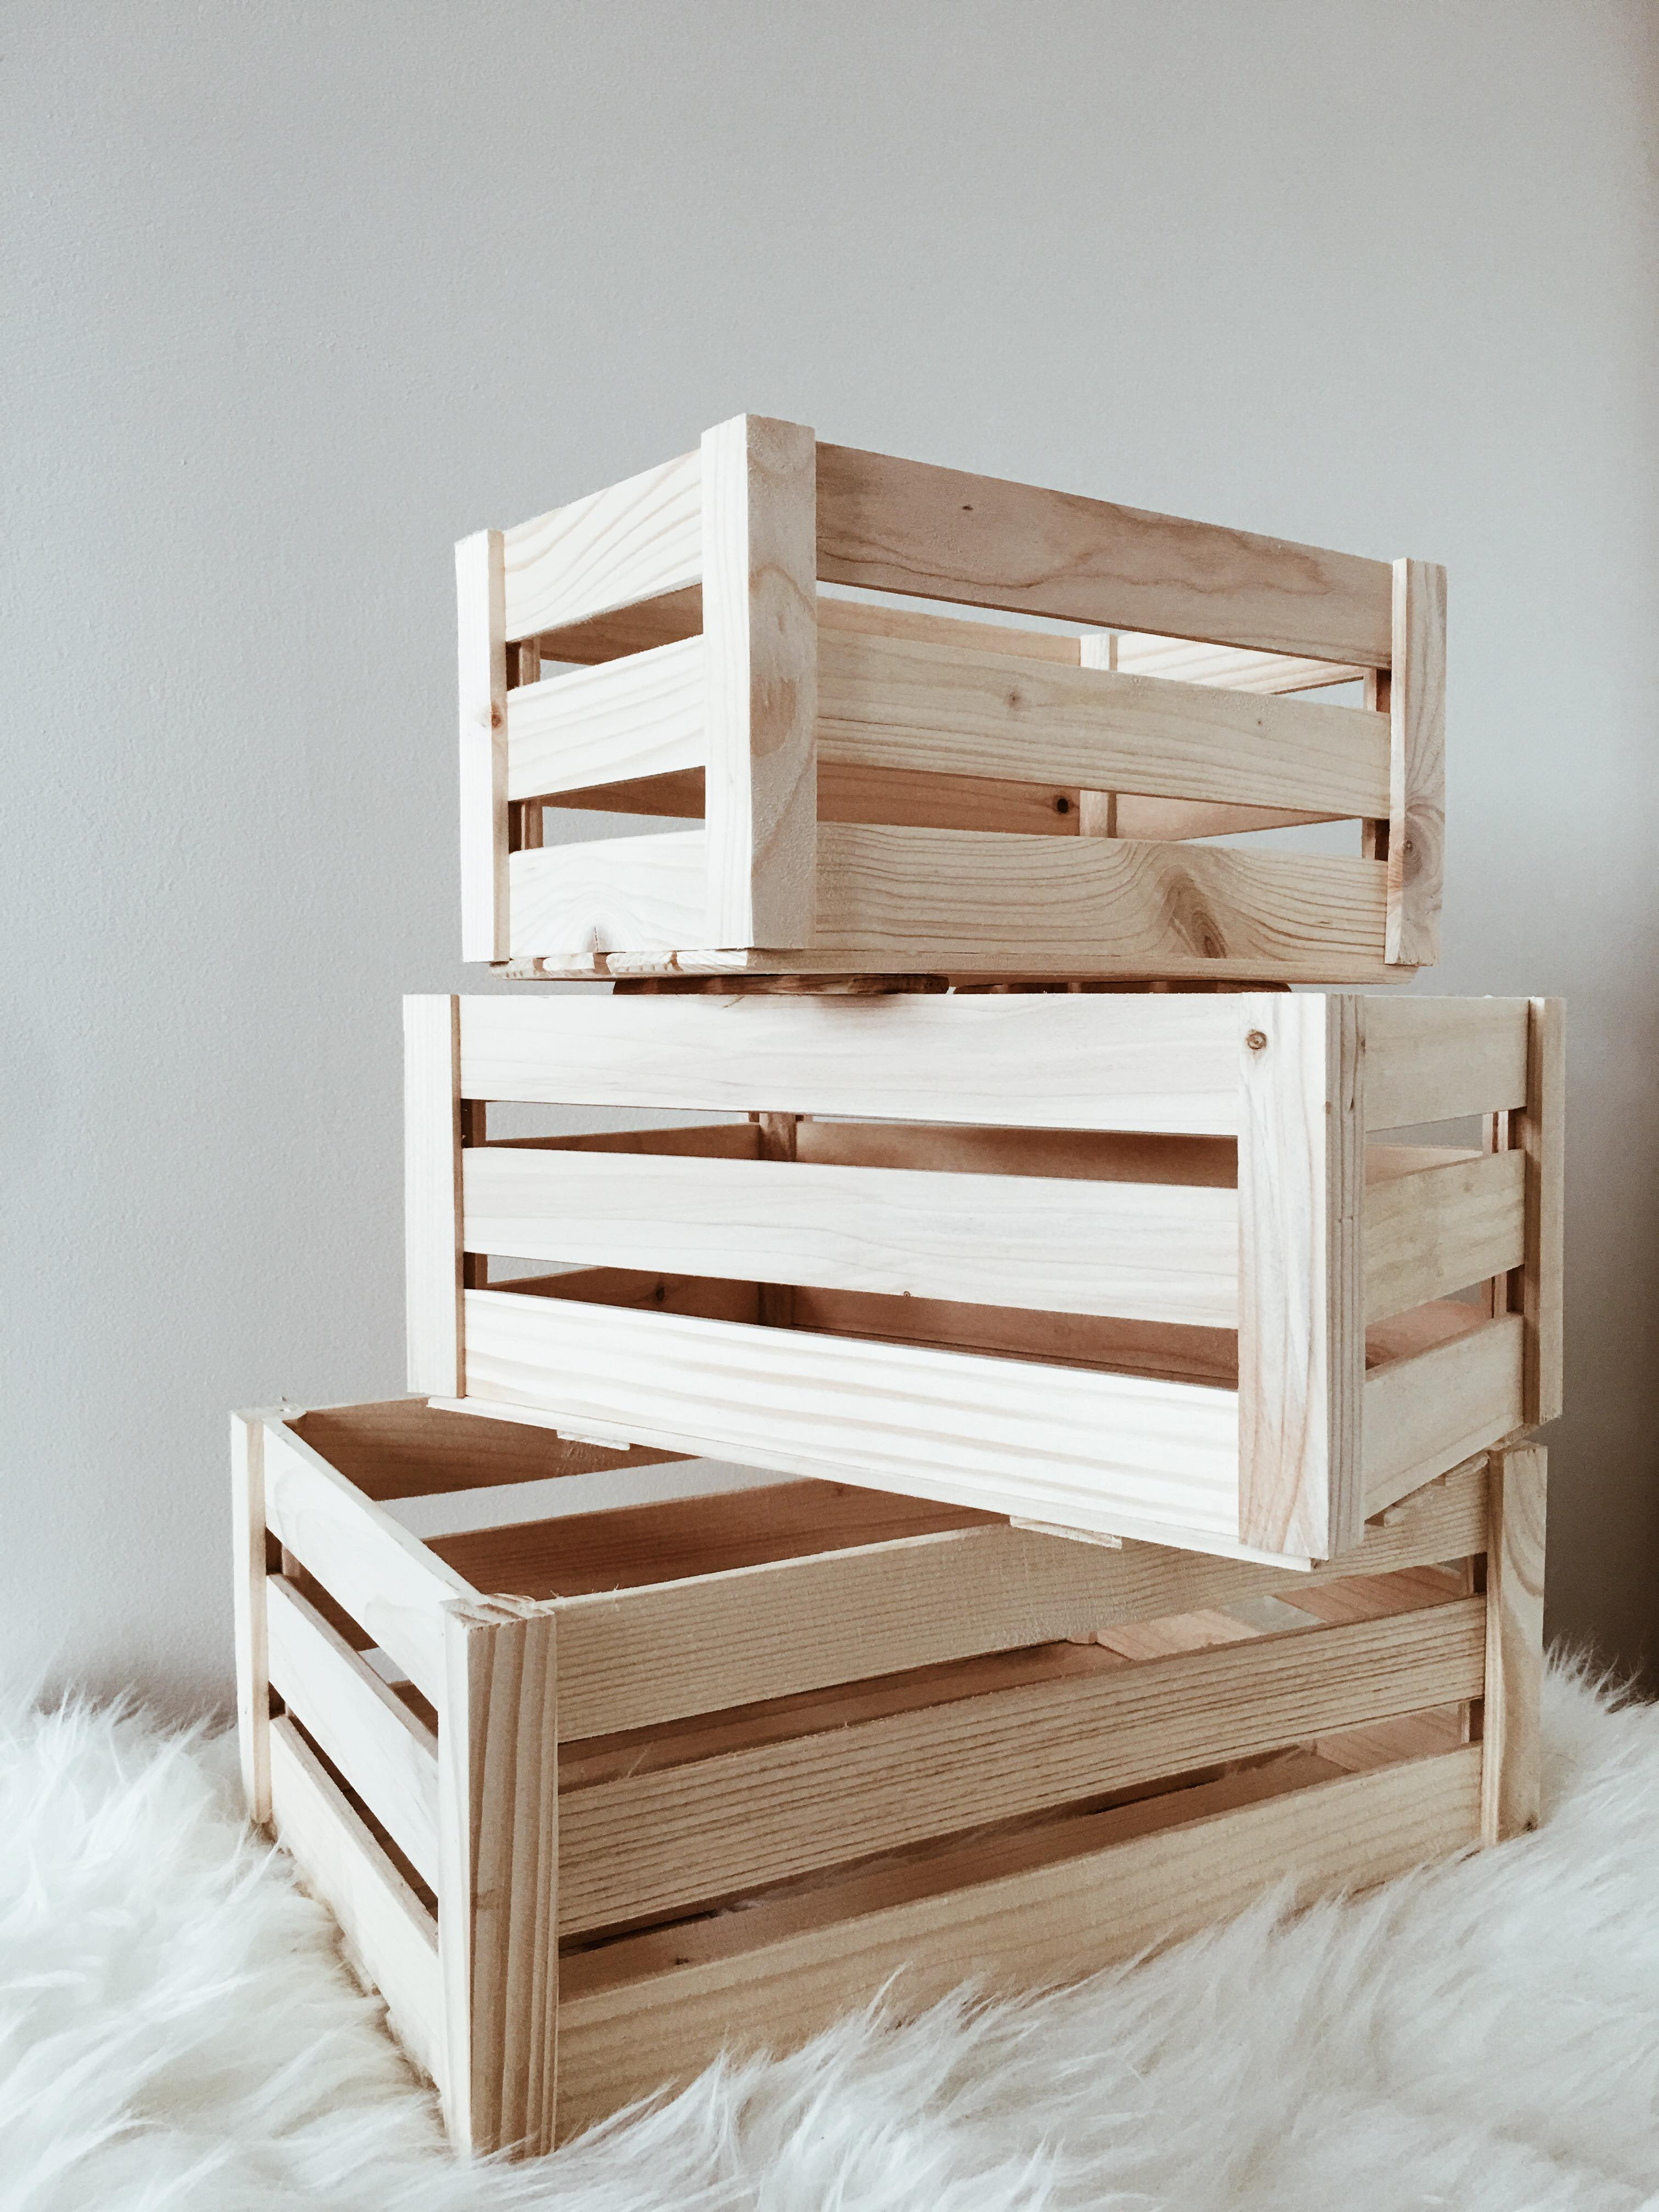 Plain Wooden Slatted Fruit Crates Containers in 3 Sizes Apple